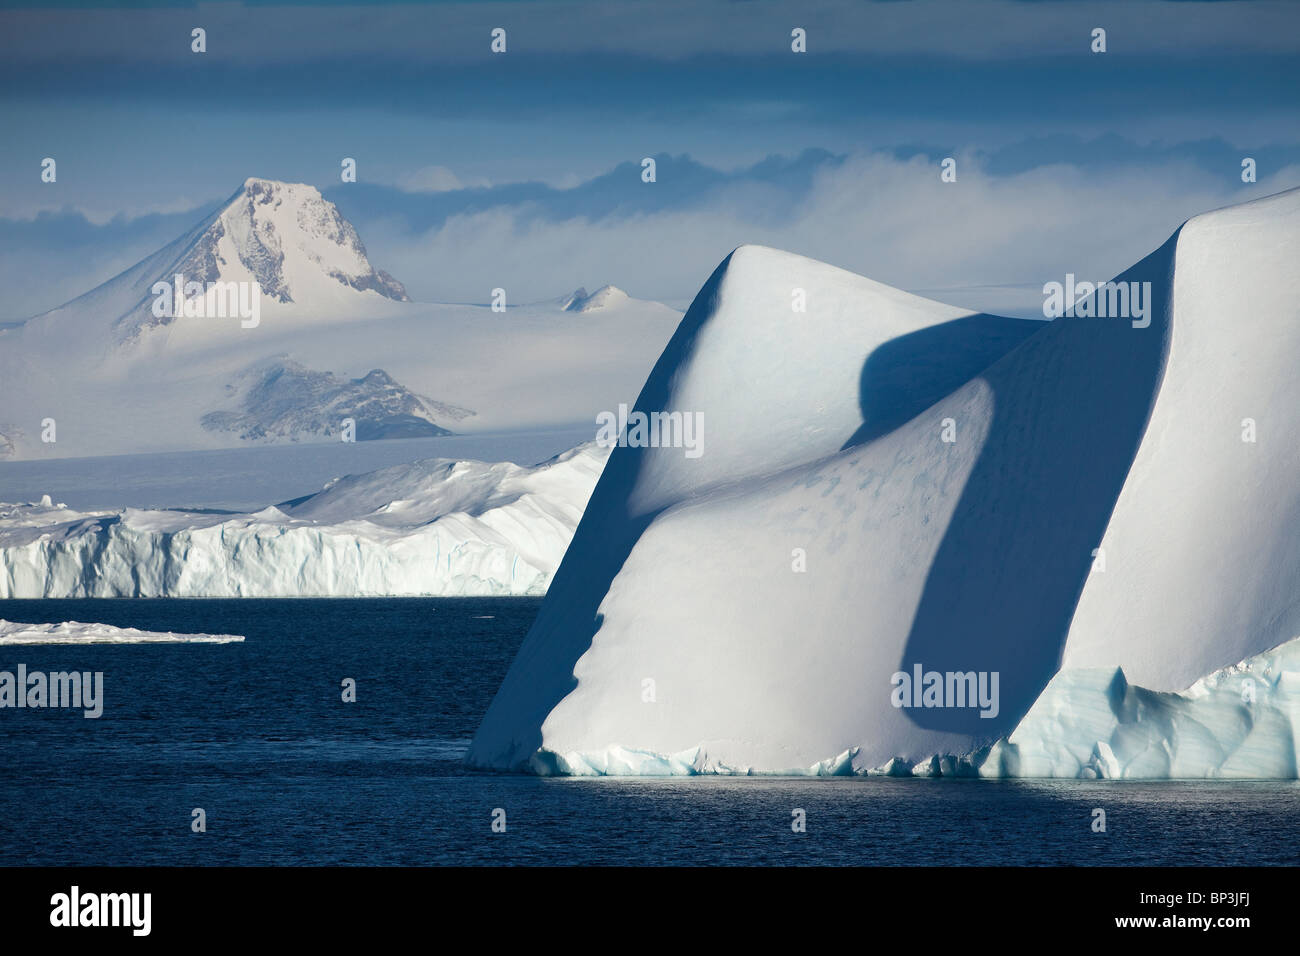 Icebergs in Antarctica in the summer - Stock Image